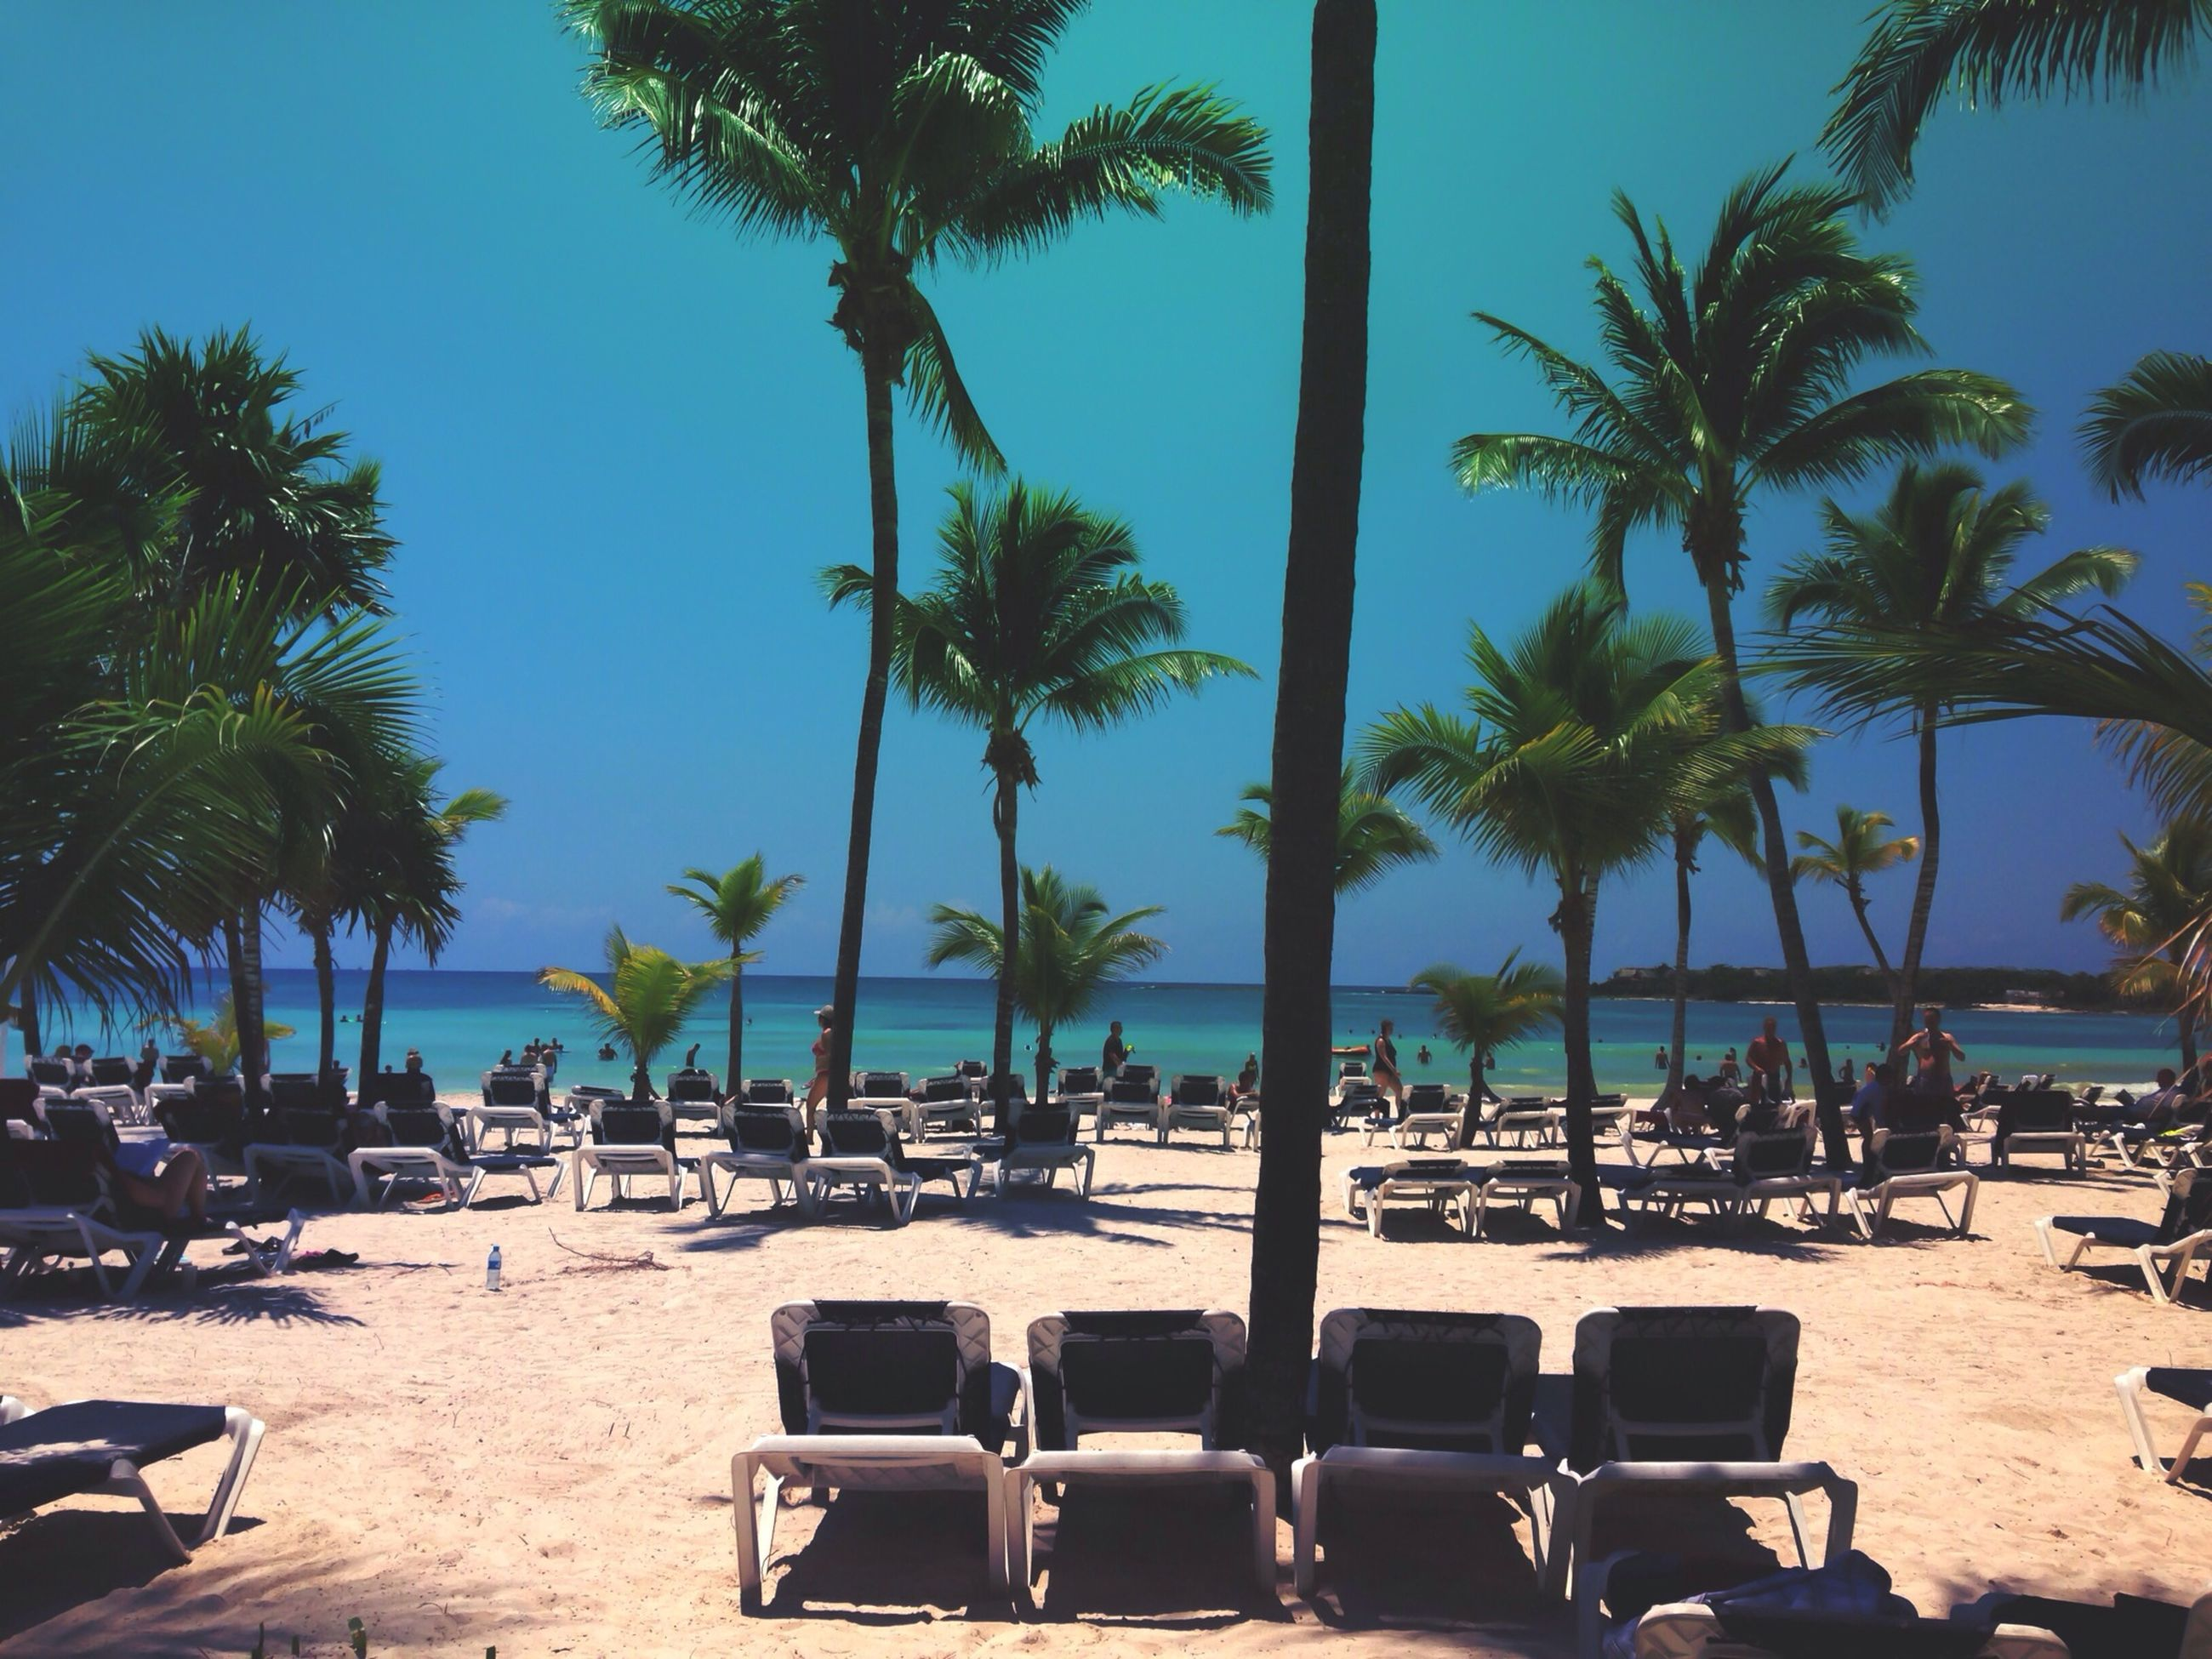 beach, sea, tree, water, sand, palm tree, shore, vacations, horizon over water, relaxation, beach umbrella, chair, clear sky, leisure activity, large group of people, lounge chair, sunlight, sky, tranquil scene